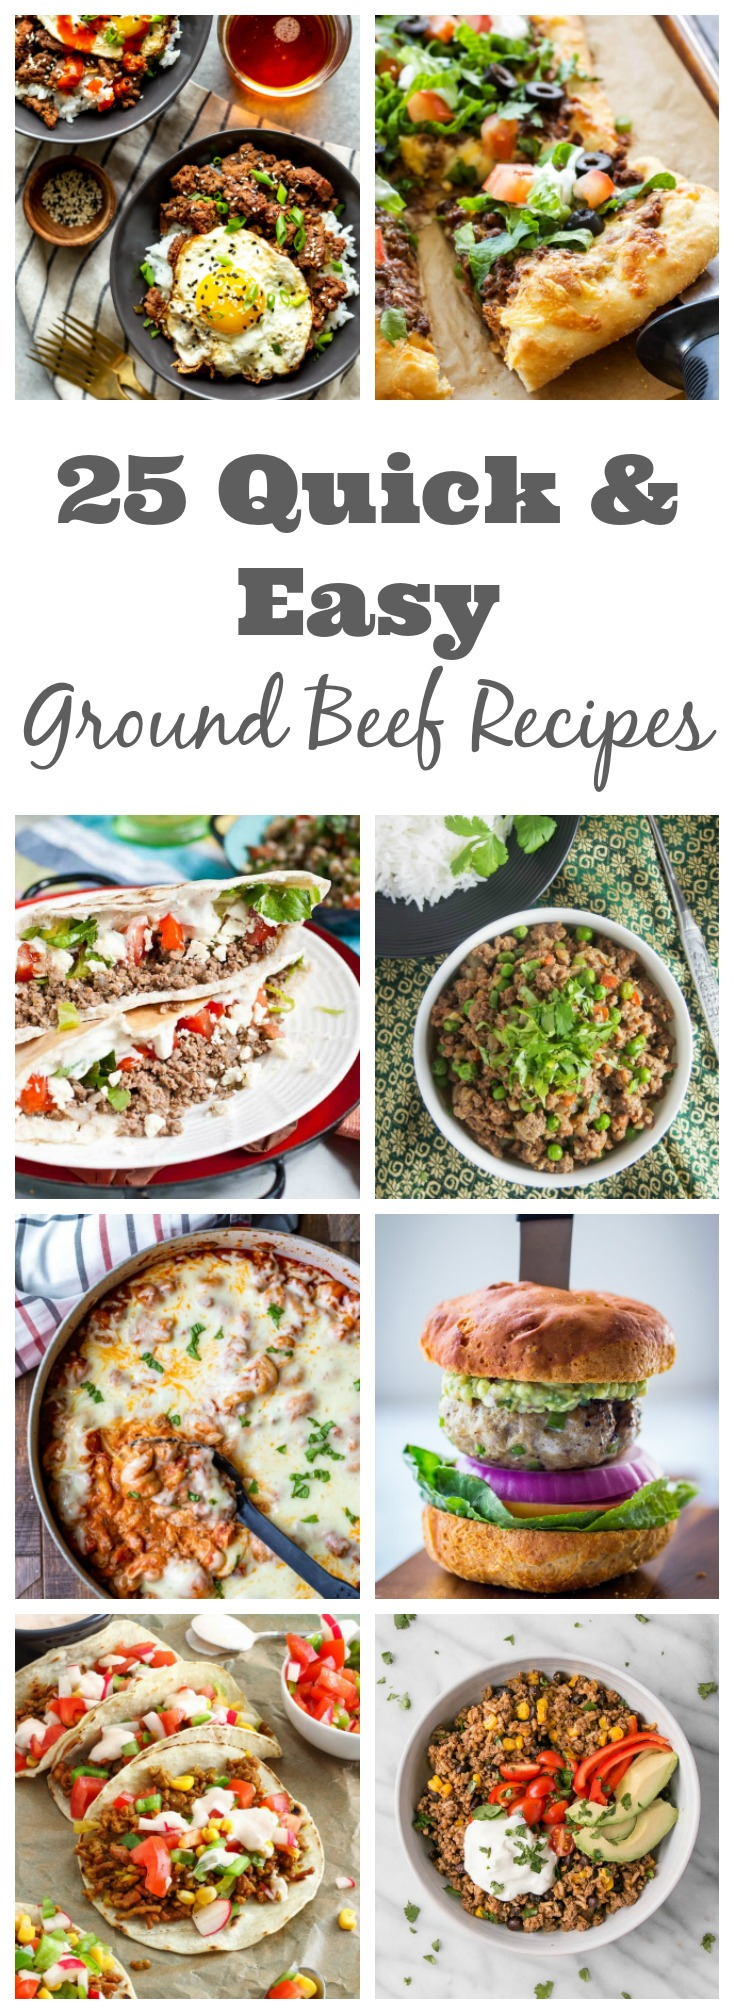 25 Quick & Easy Ground Beef Recipes for dinner.  Looking for dinner ideas using ground beef?  I've rounded up 25 Quick and Easy Dinner recipes using ground beef!